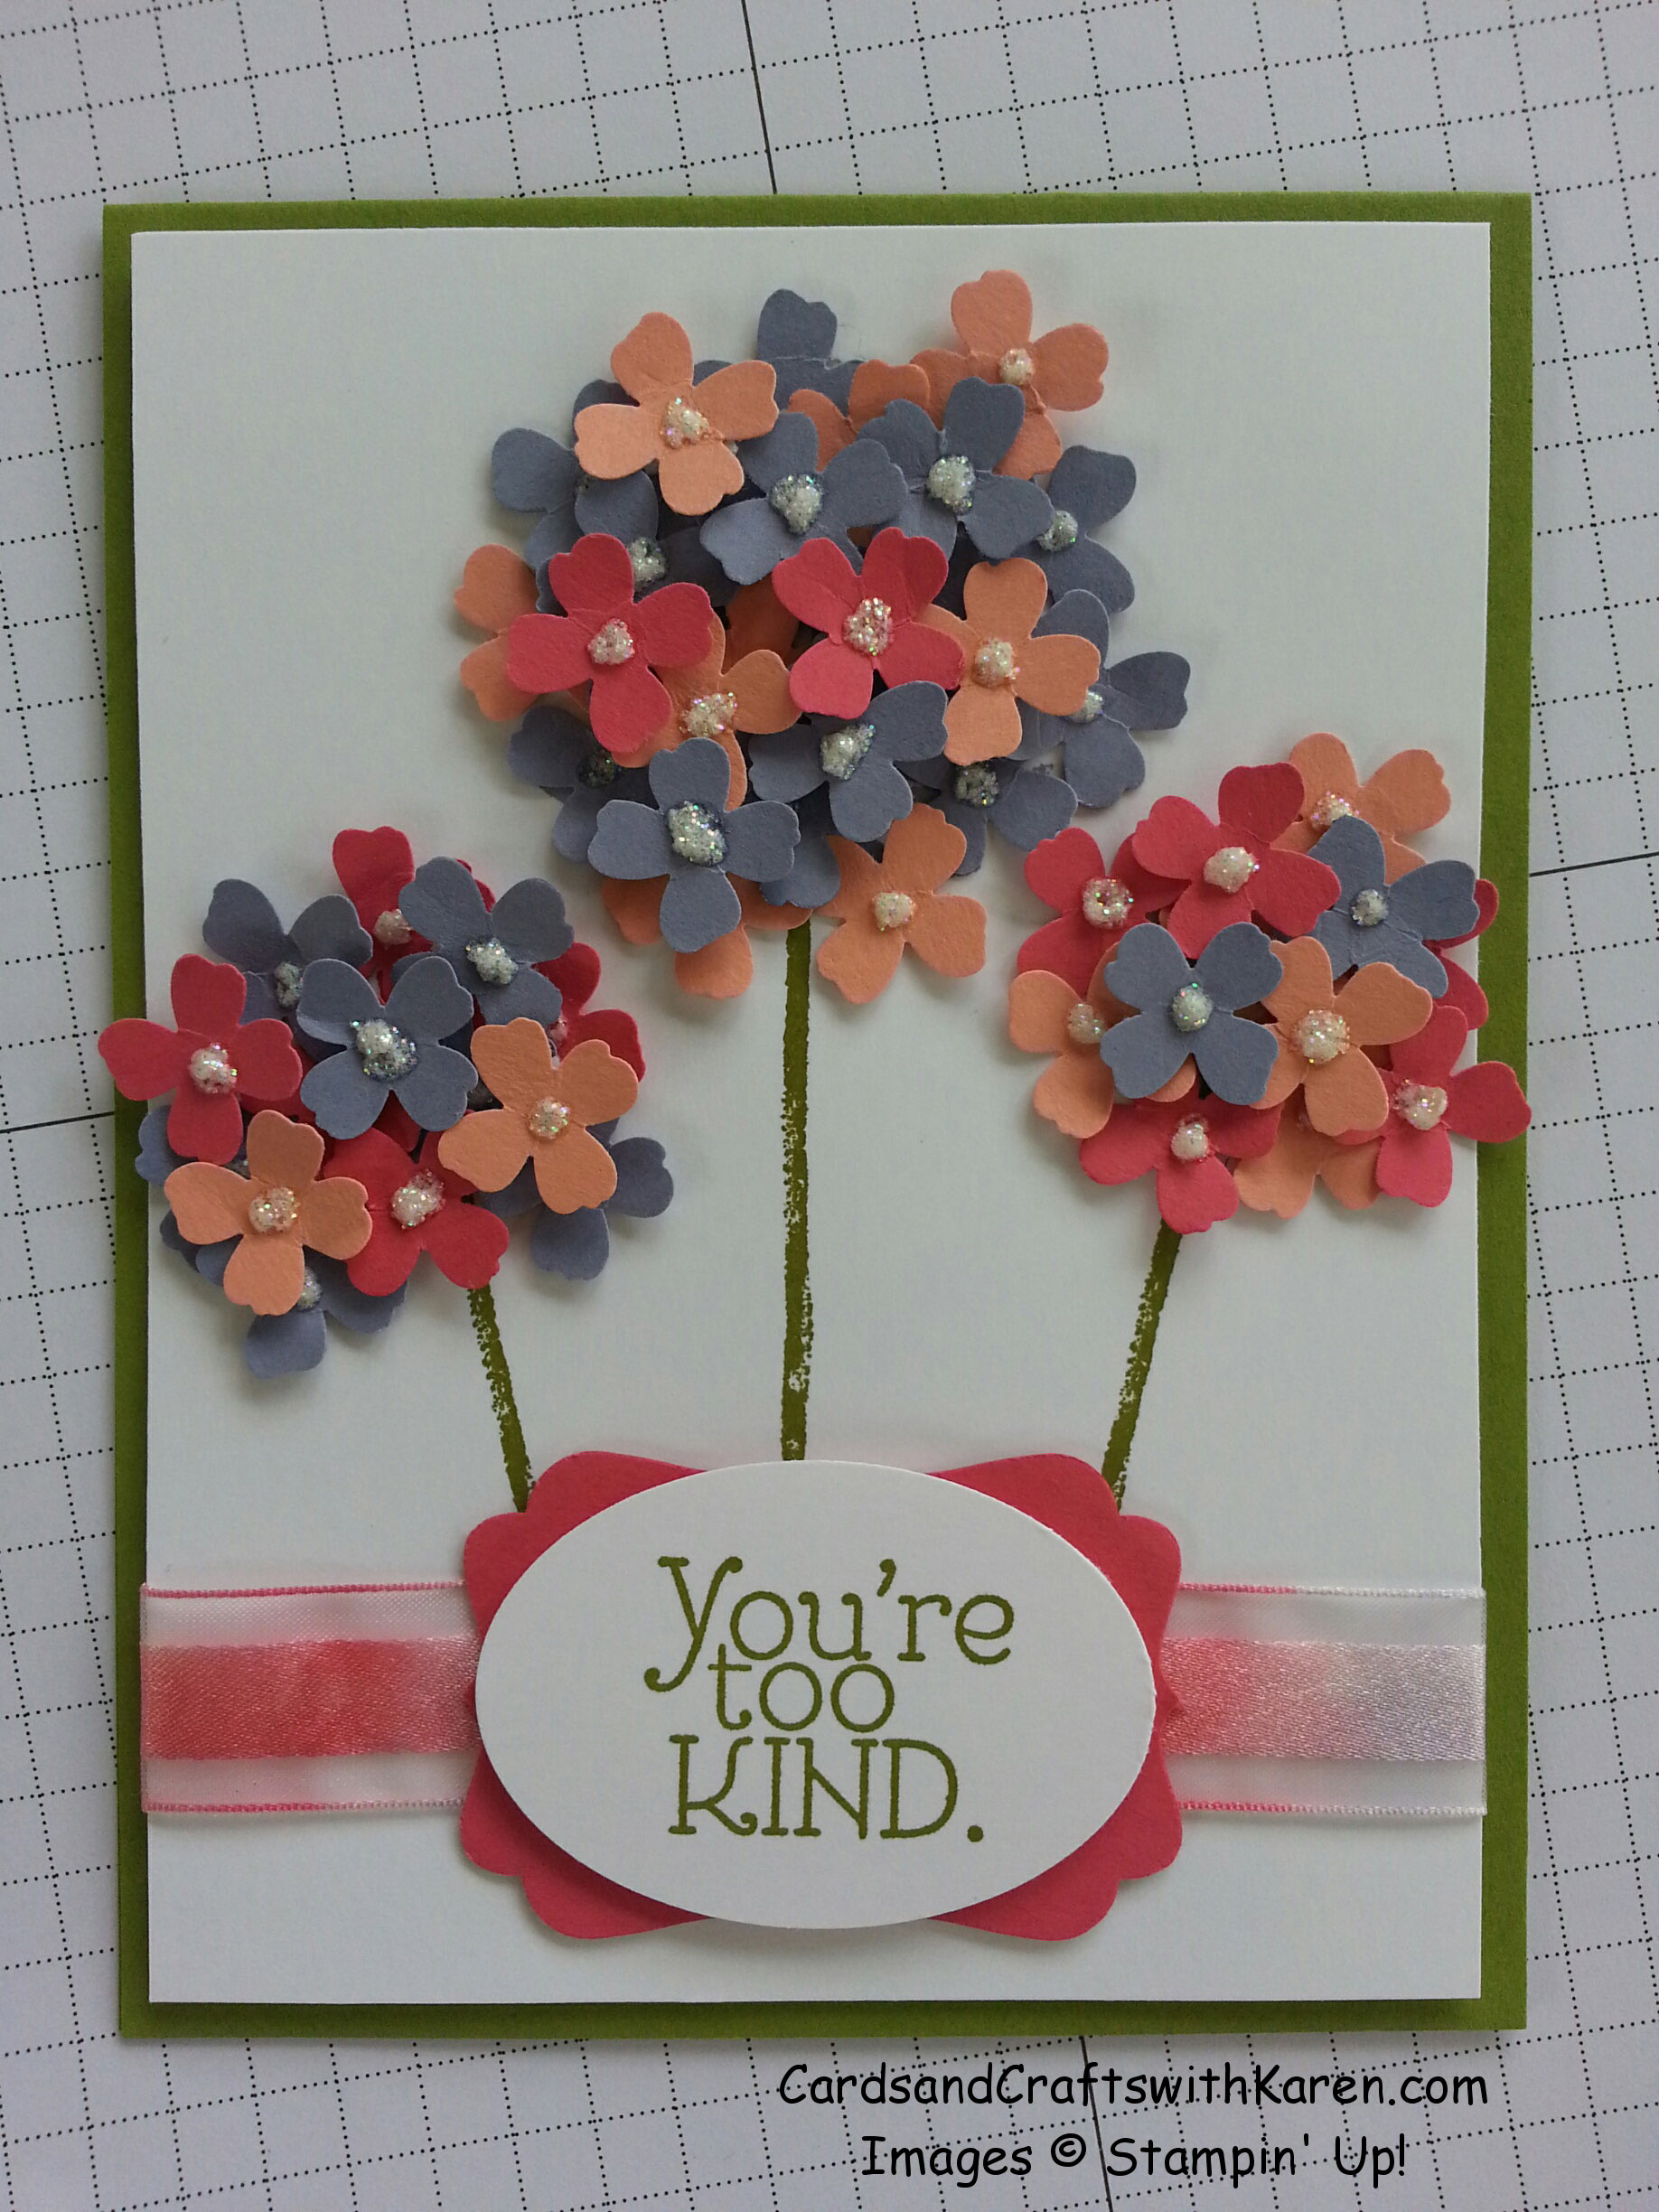 April showers = May flowers! | Cards and Crafts with Karen